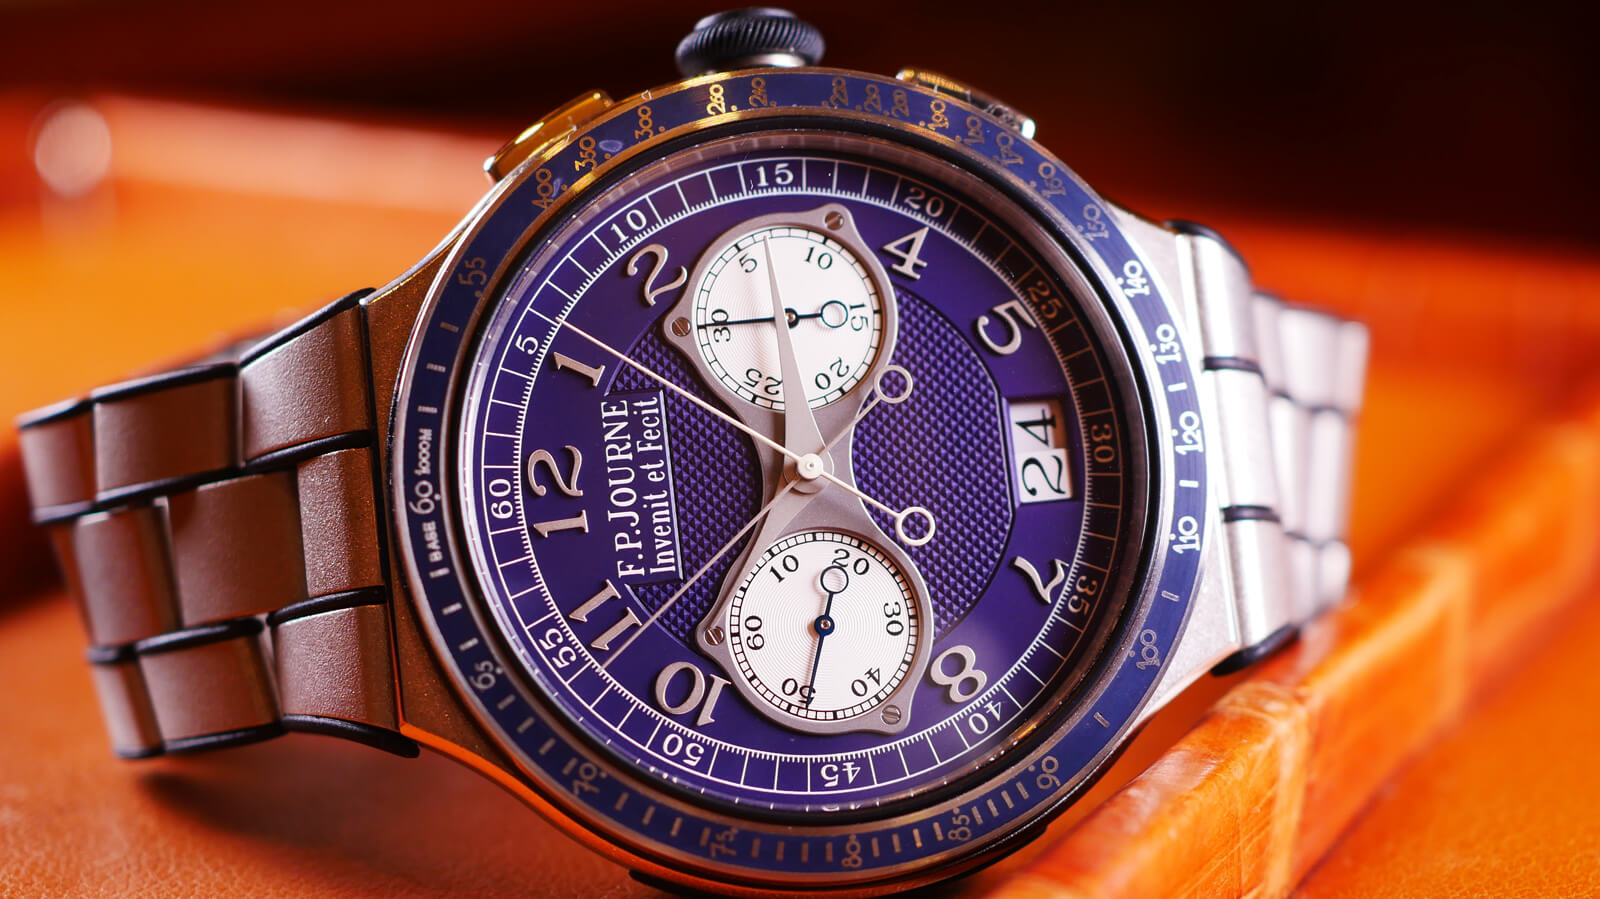 F.P. Journe Chronographe Monopoussir Rattrapante - split-seconds chronograph with monopusher and large-date display